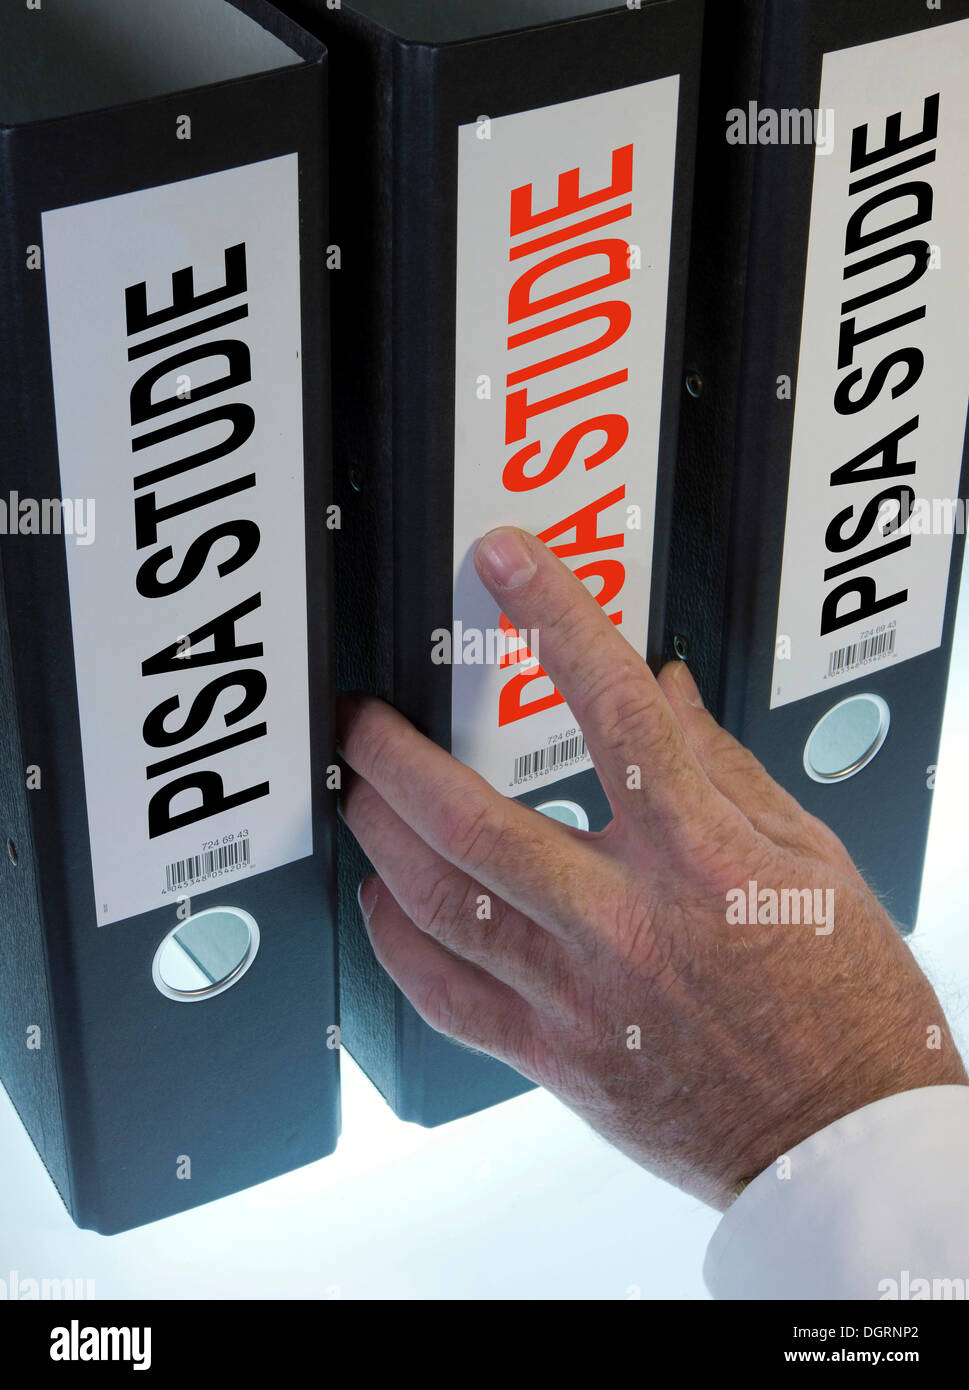 """Hand reaching for a file folder labeled """"PISA-Studie"""", German for """"Programme for International Student Assessment, Stock Photo"""